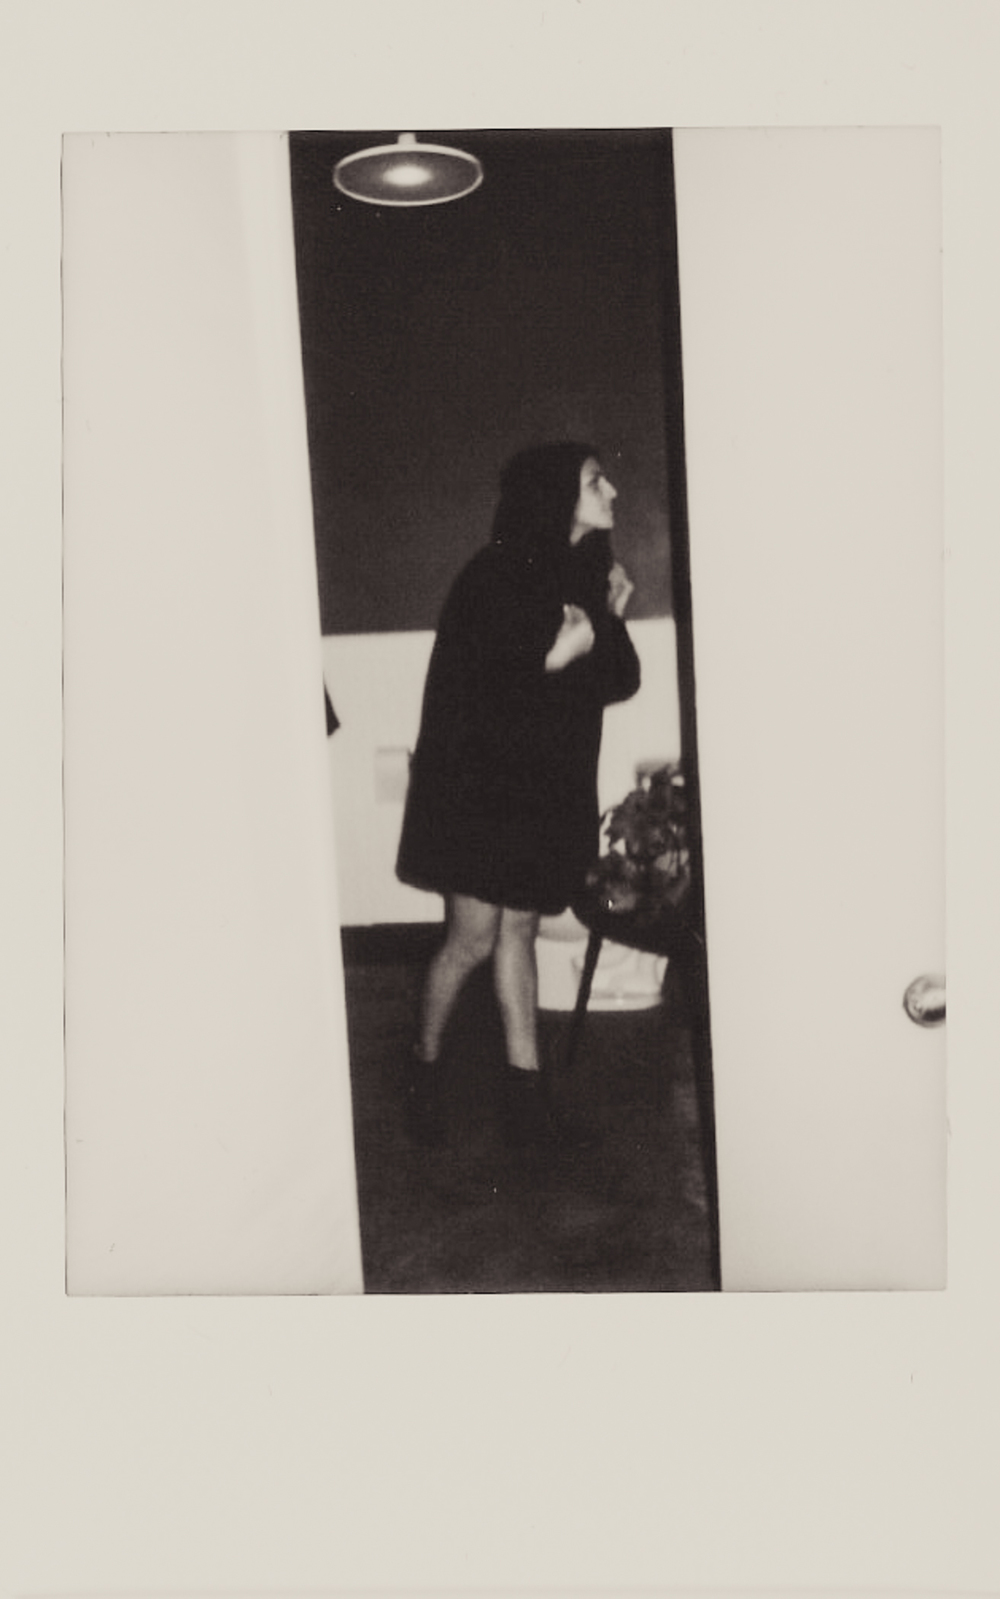 2015 Dec_Darling-Polaroid6.jpg